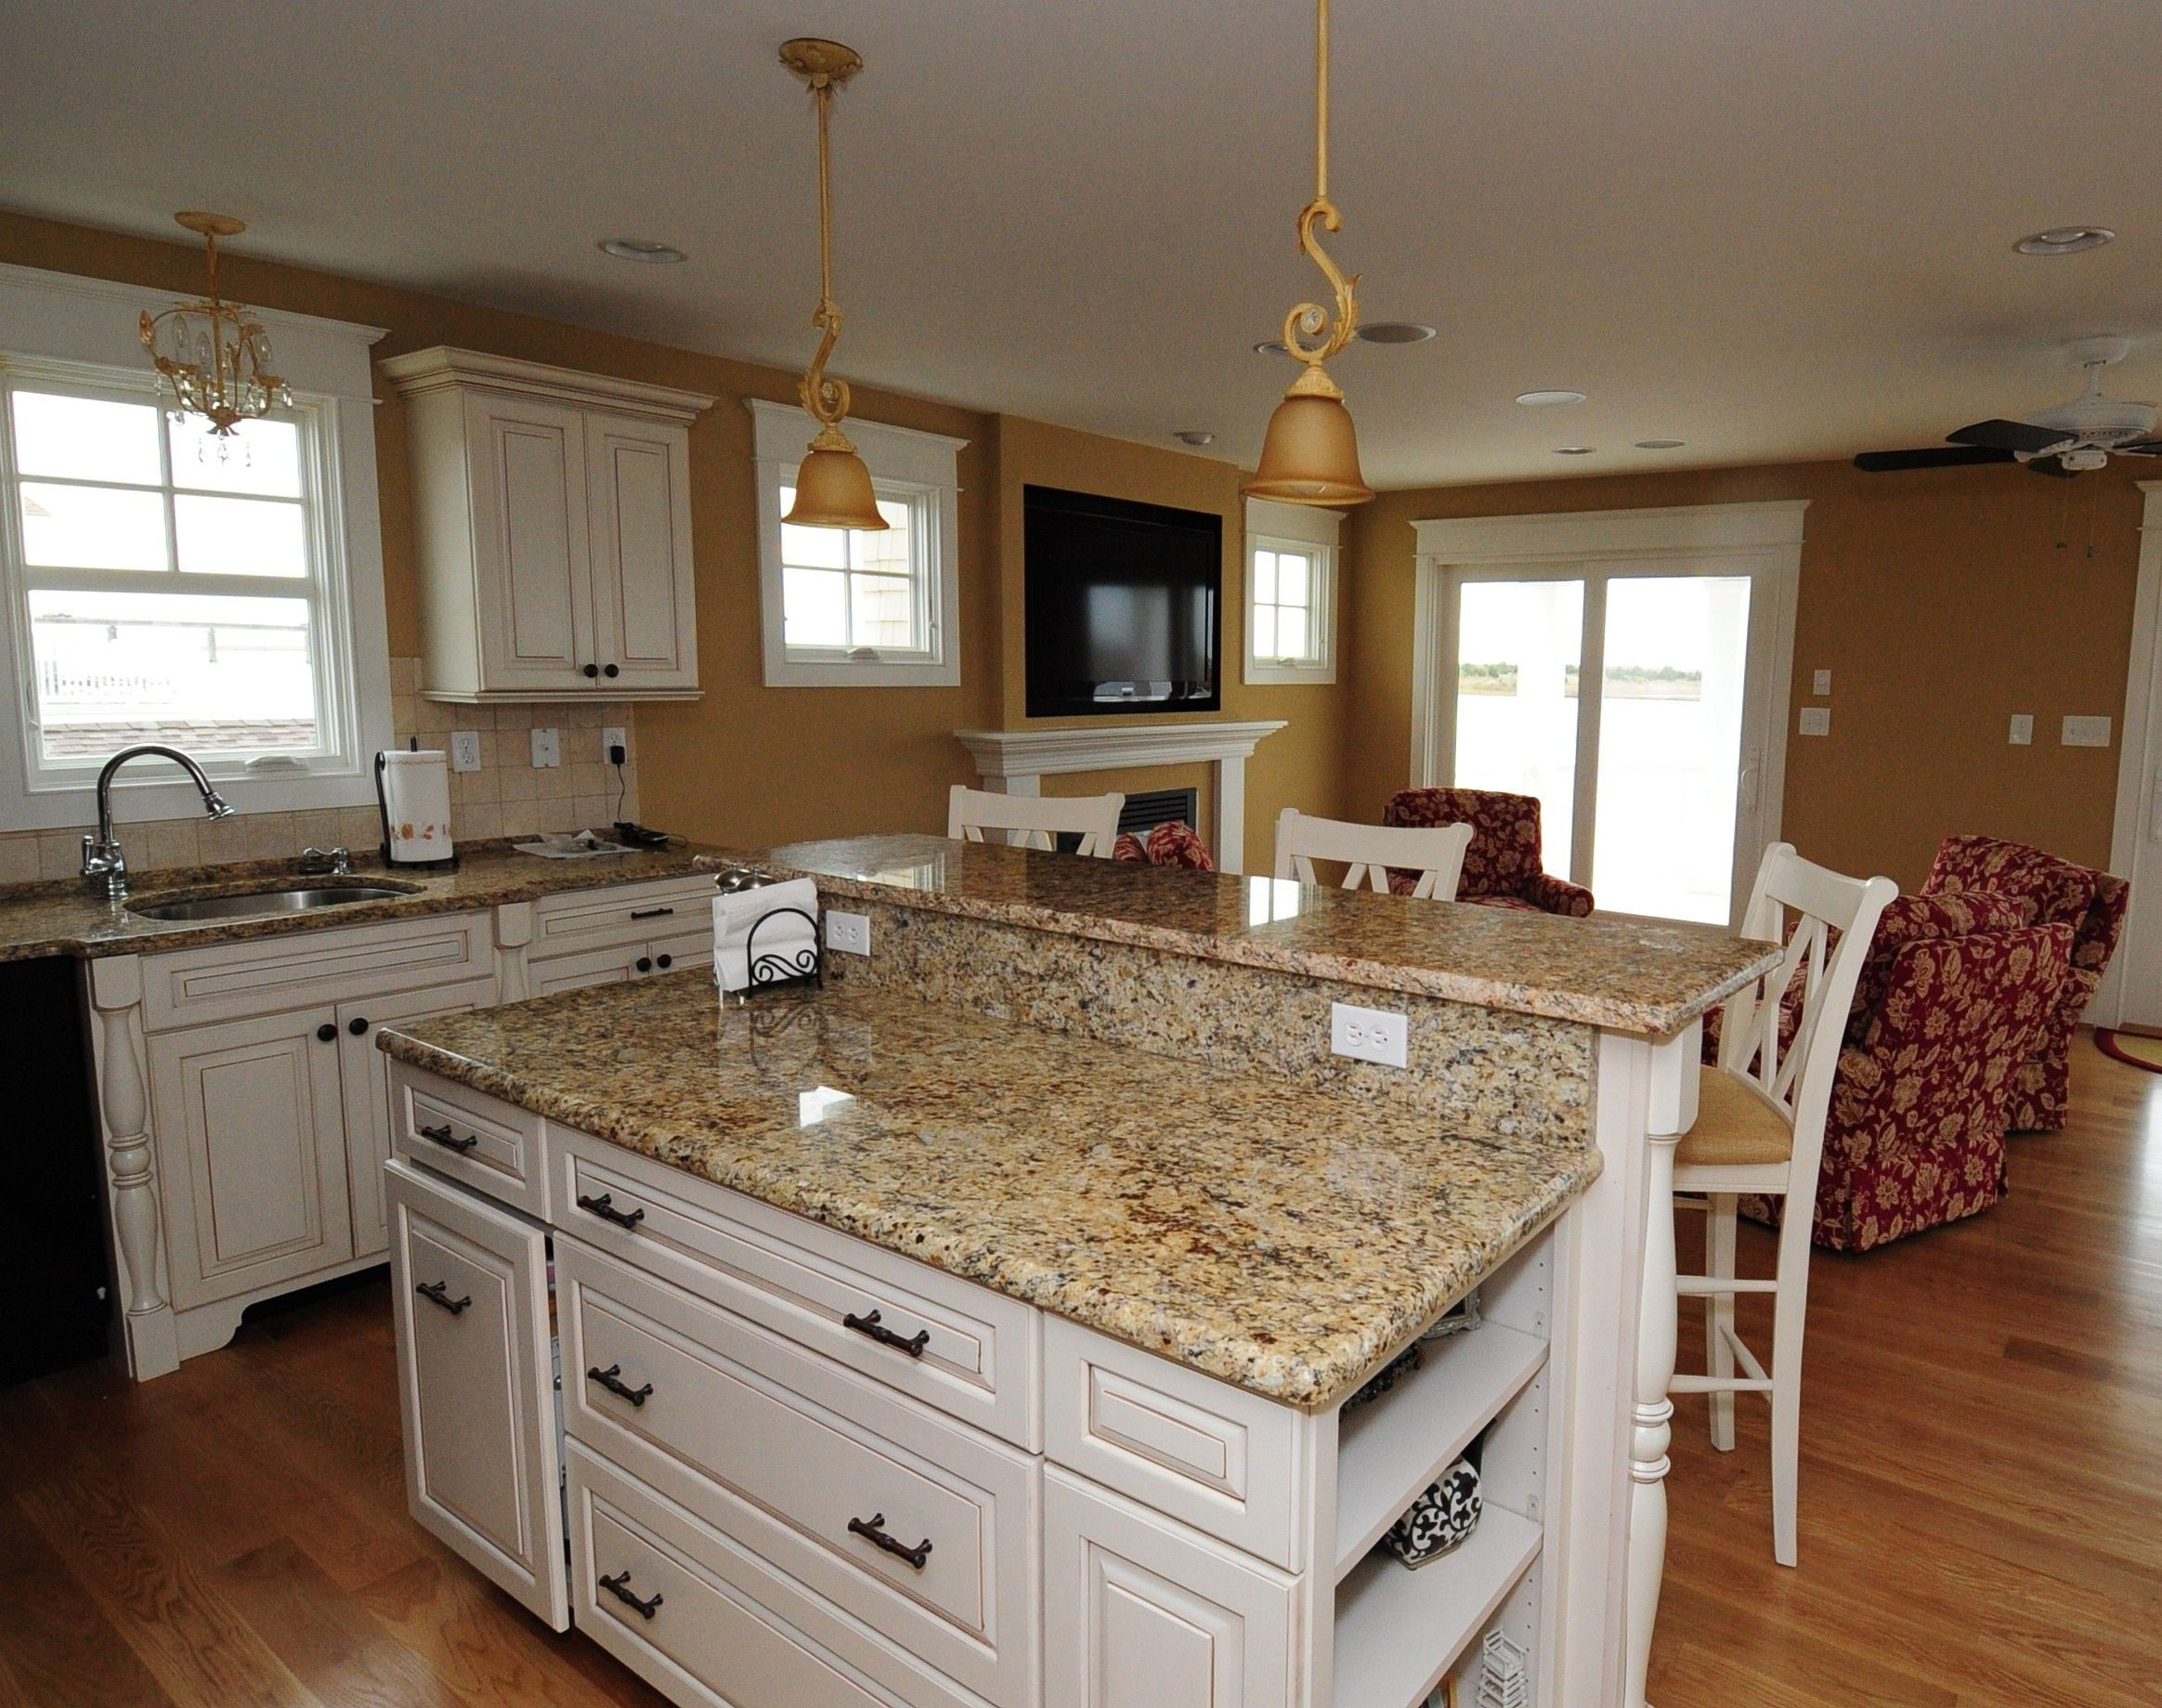 Image result for kitchen quartz countertops that are light